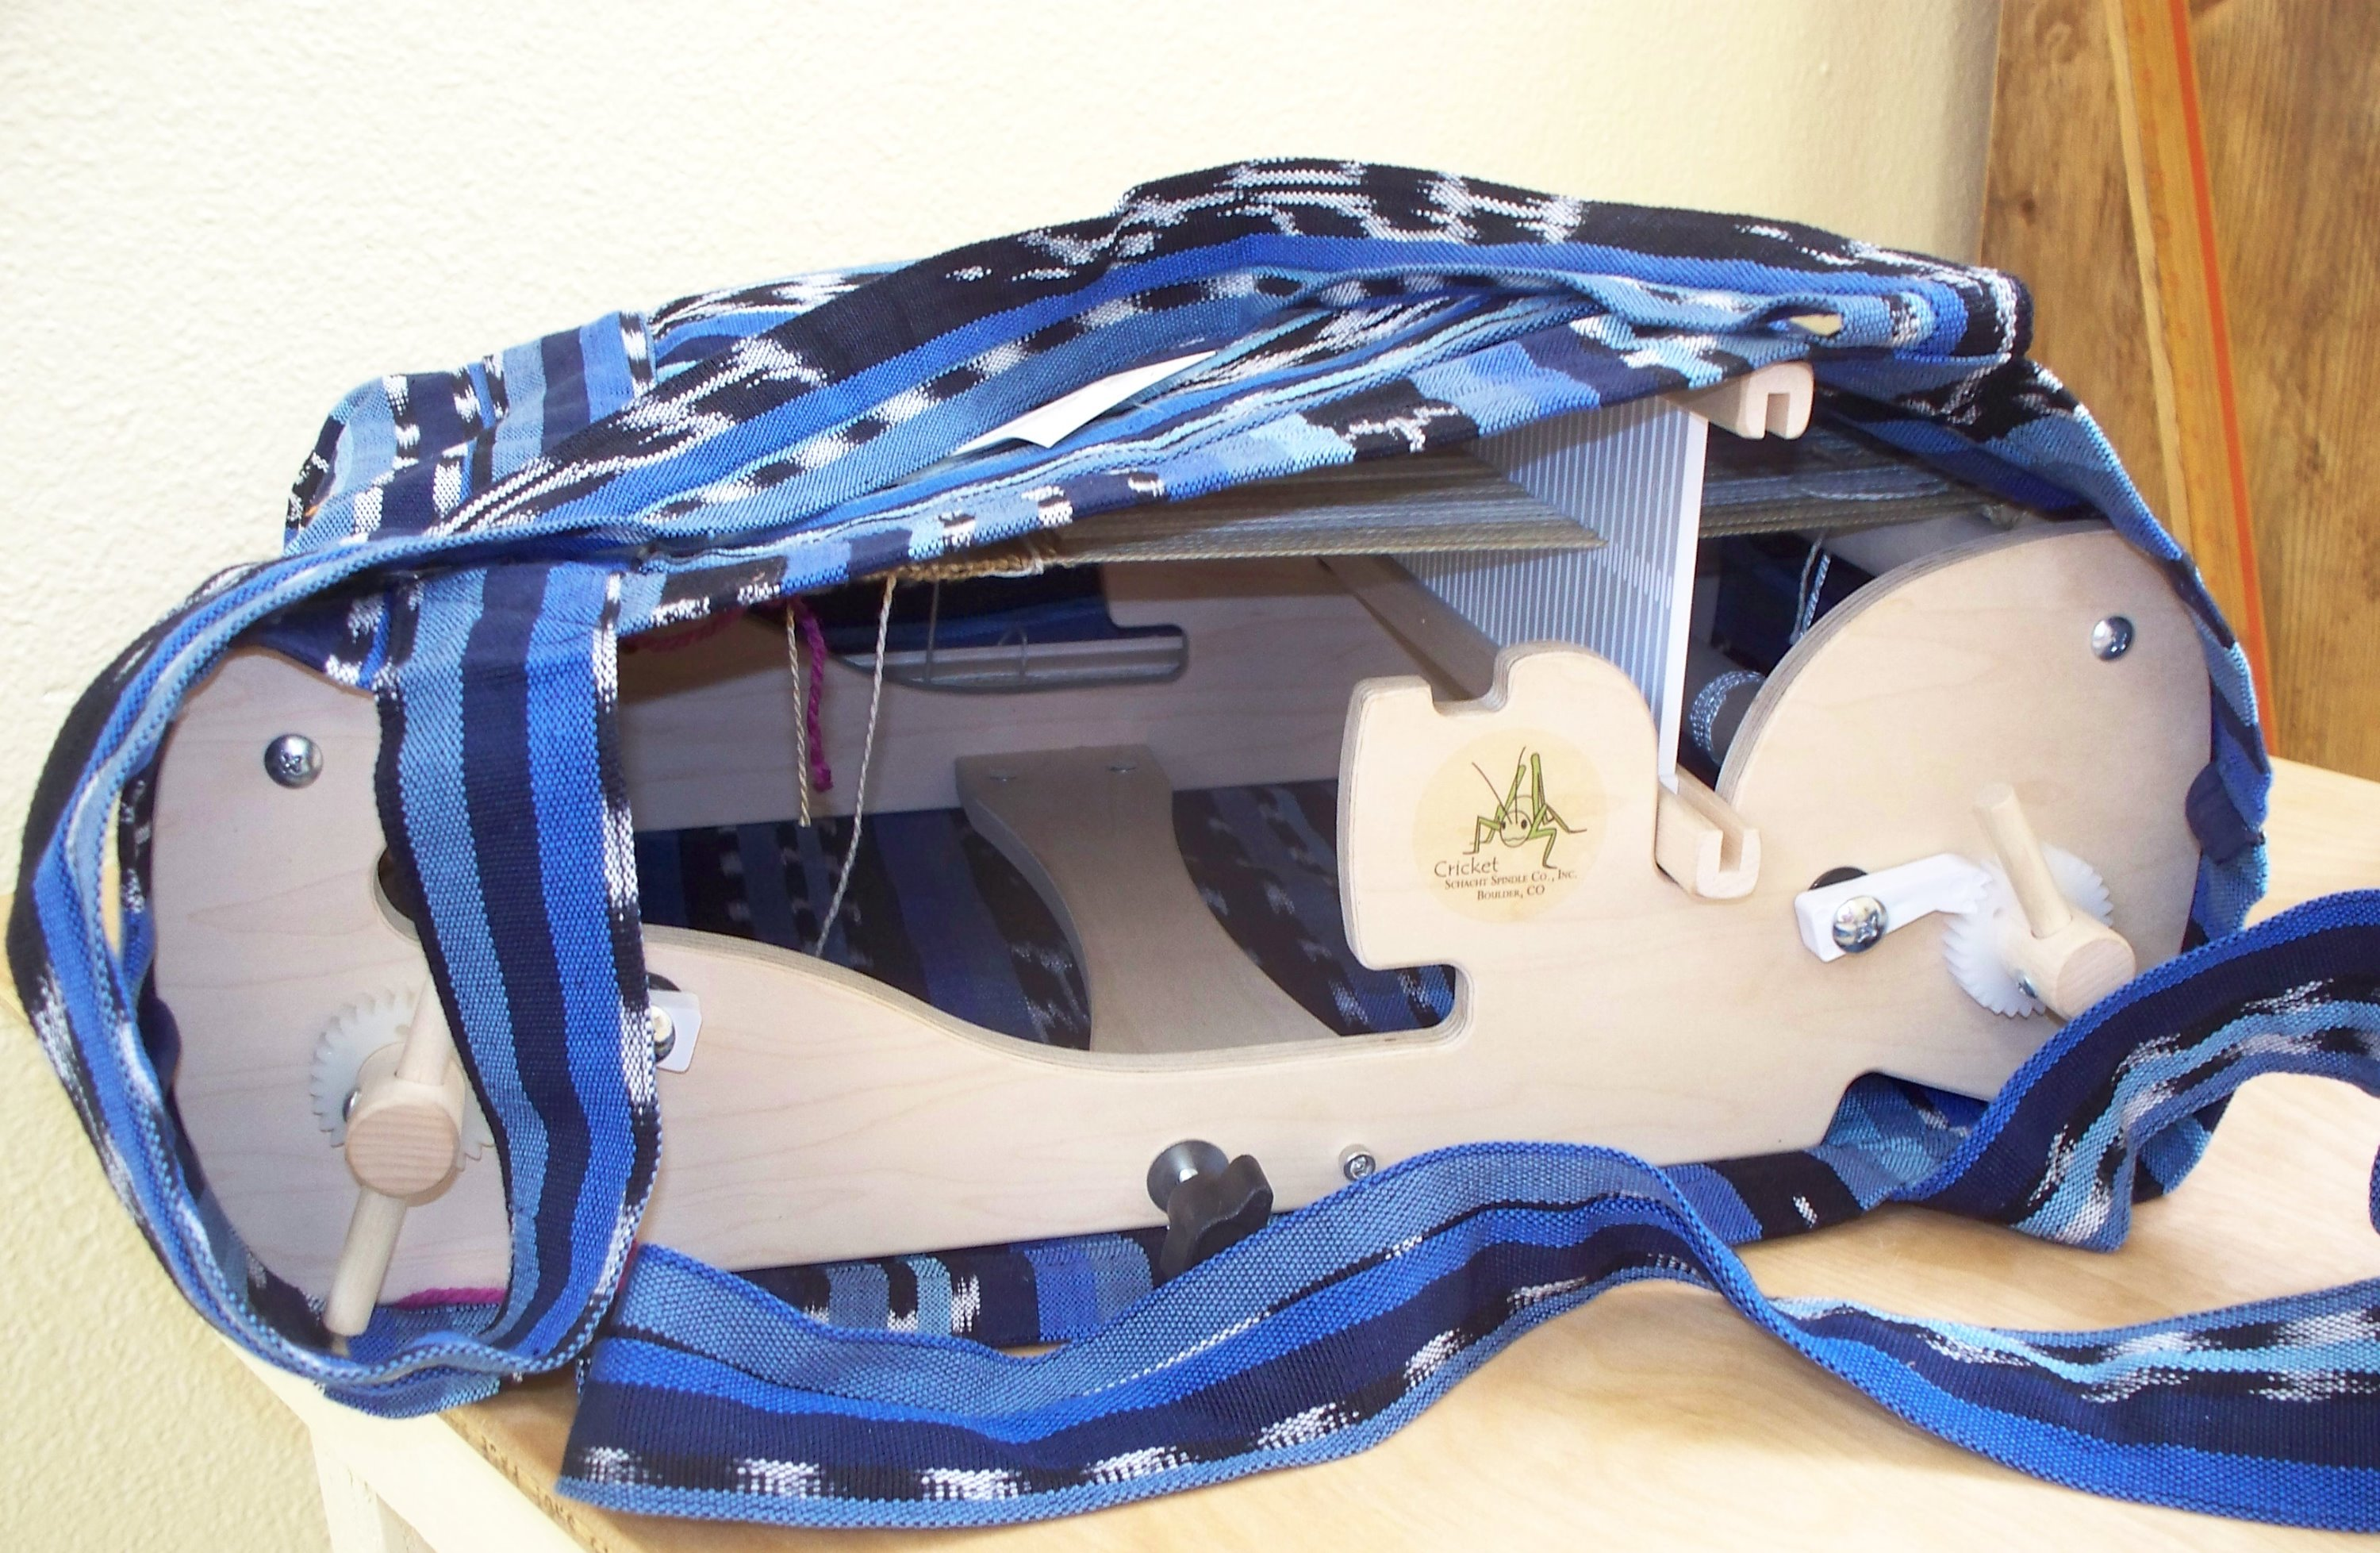 Cricket Loom and Cricket Bag